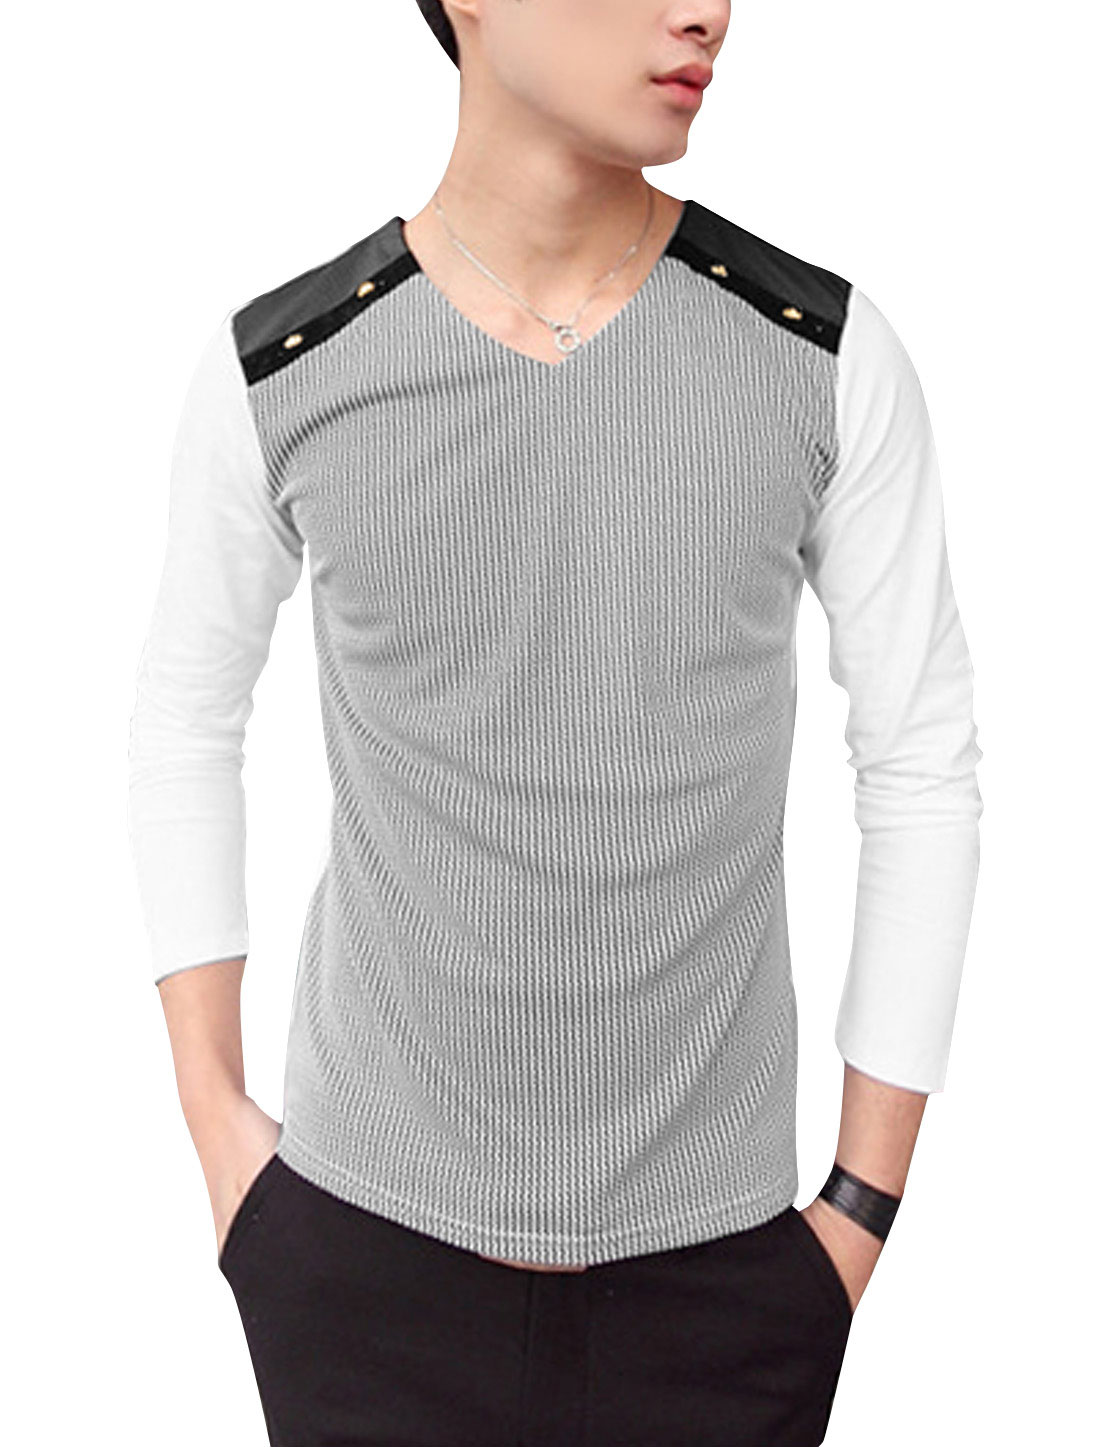 Men V-Neck Long Sleeved Patched Detail Stripes Leisure Shirt White S